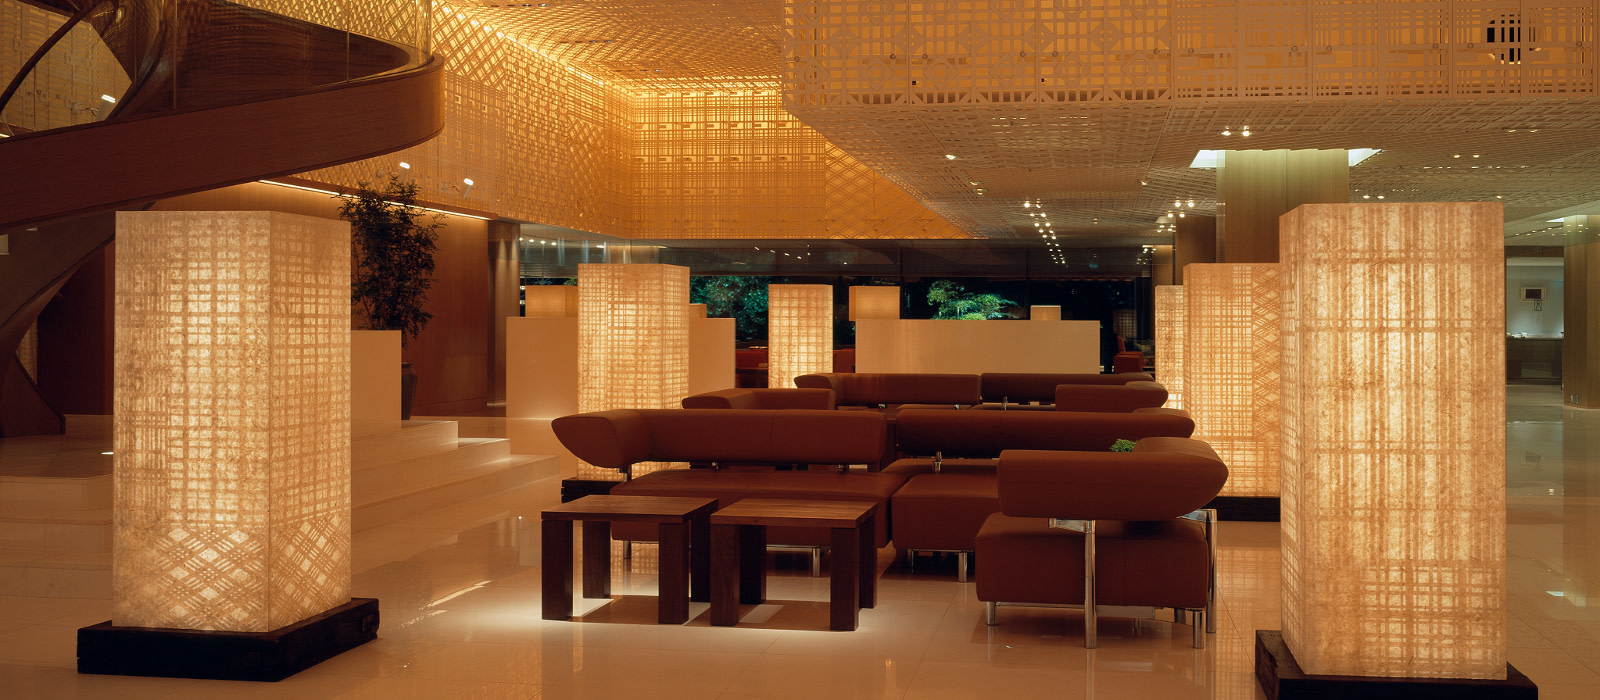 Hotel Hyatt Regency Kyoto Japan